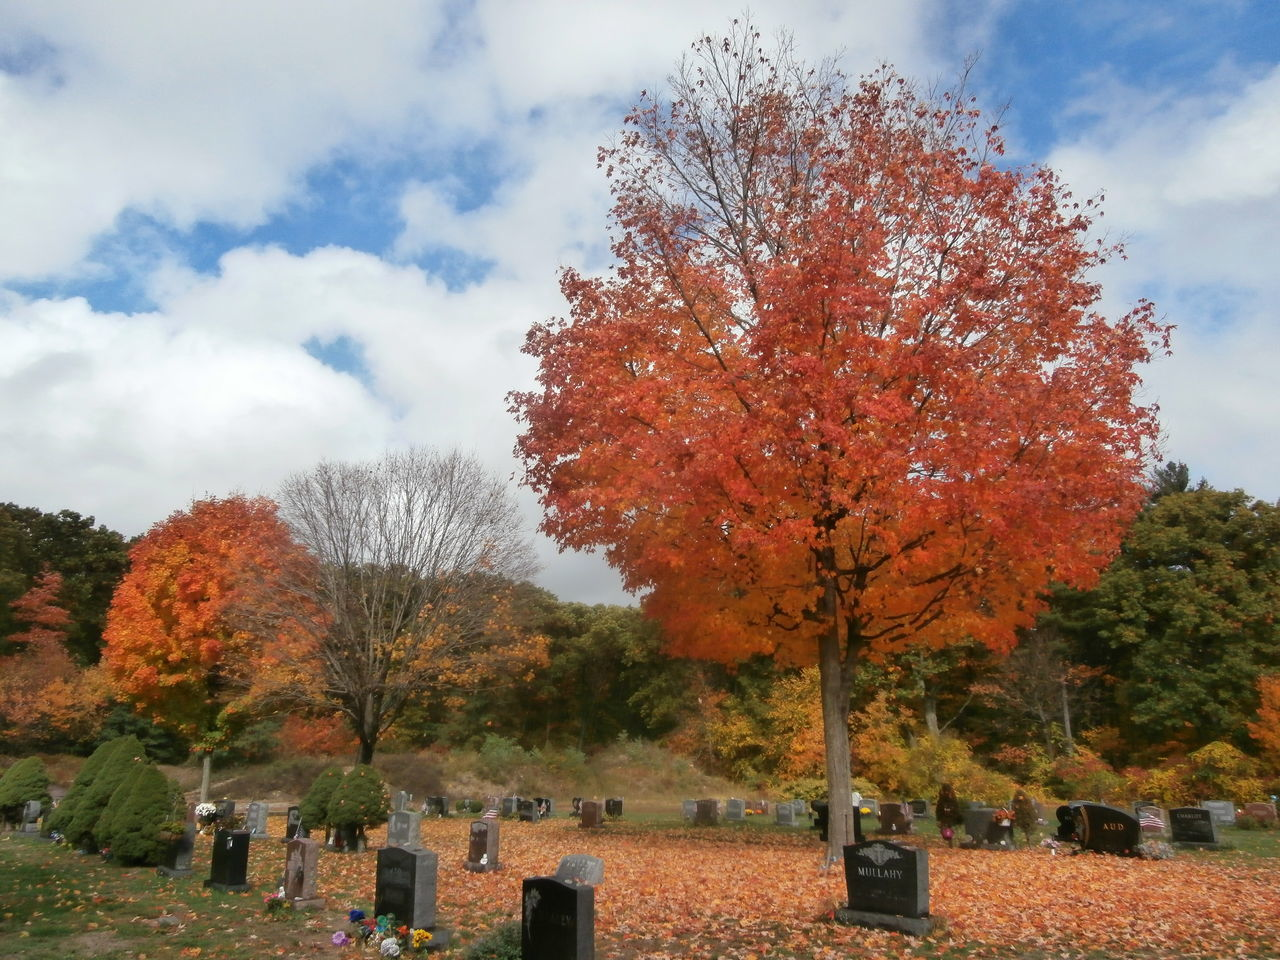 tree, autumn, change, leaf, nature, cemetery, tombstone, beauty in nature, tranquility, day, sky, no people, outdoors, maple tree, tranquil scene, memorial, cloud - sky, growth, scenics, branch, maple